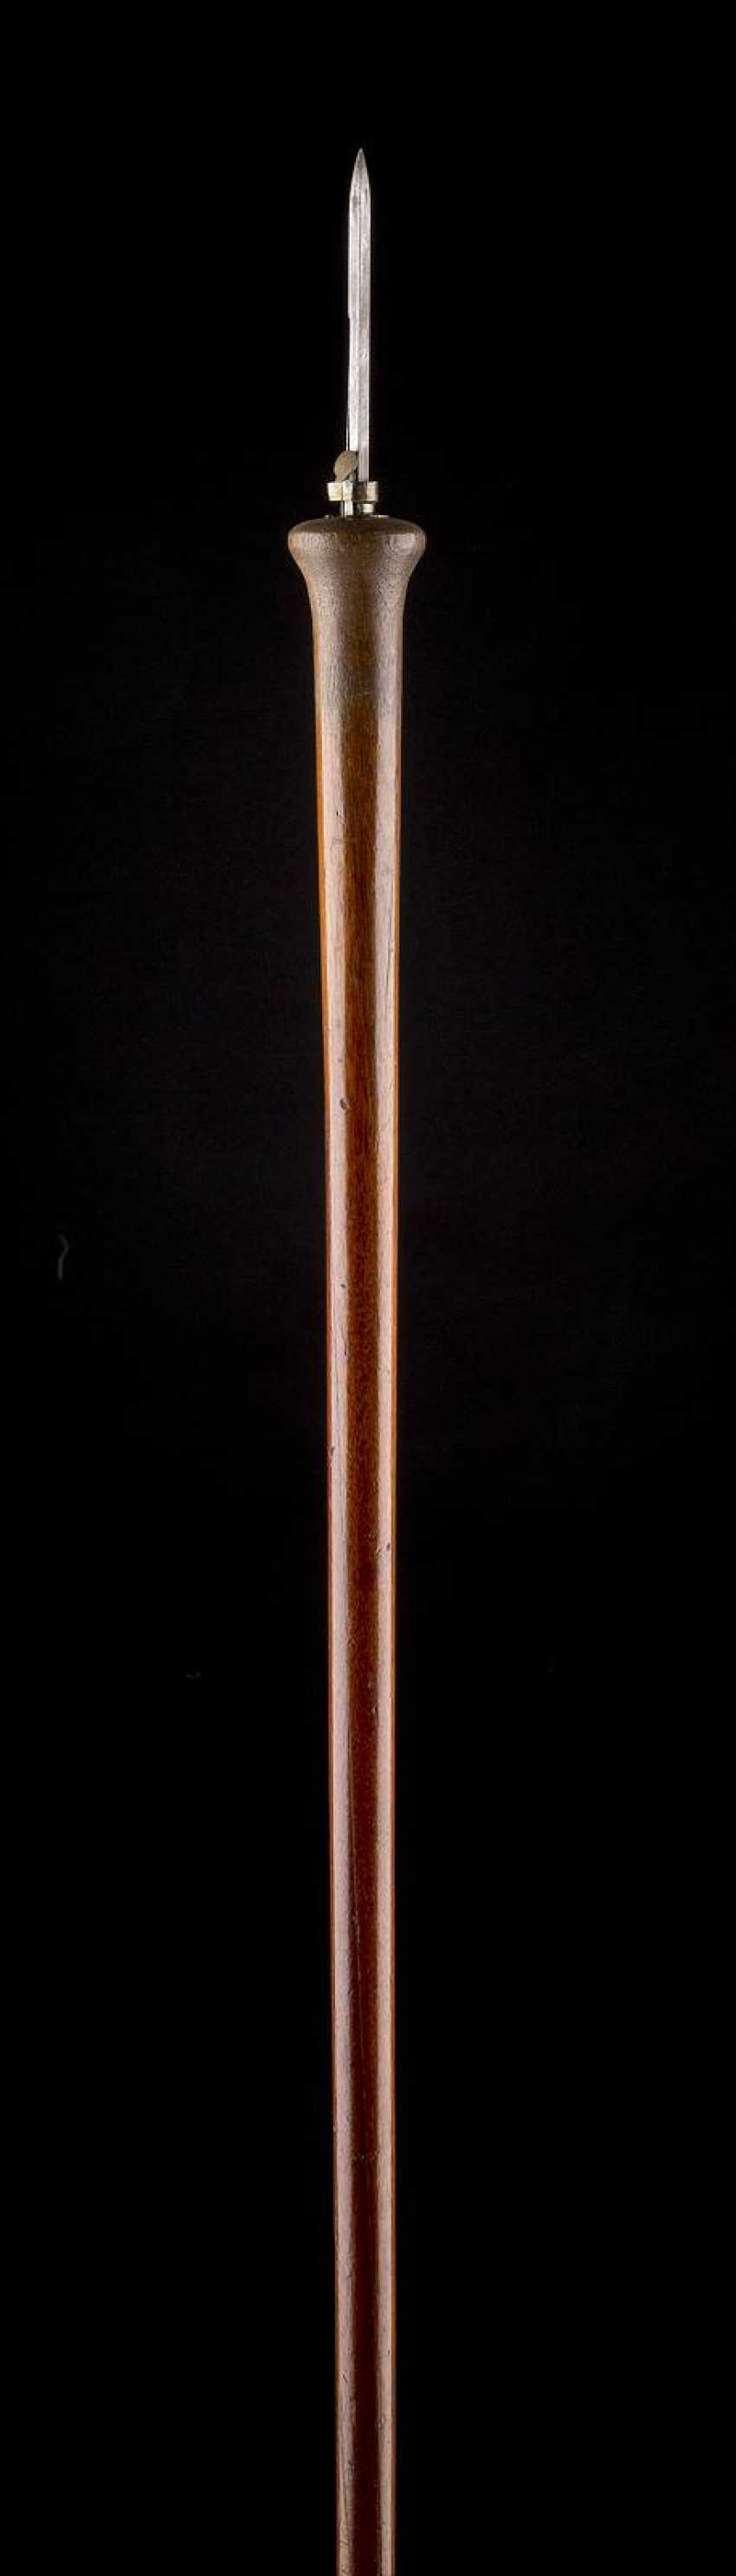 WALKING STICK WITH METAL SPIKE - photo 1